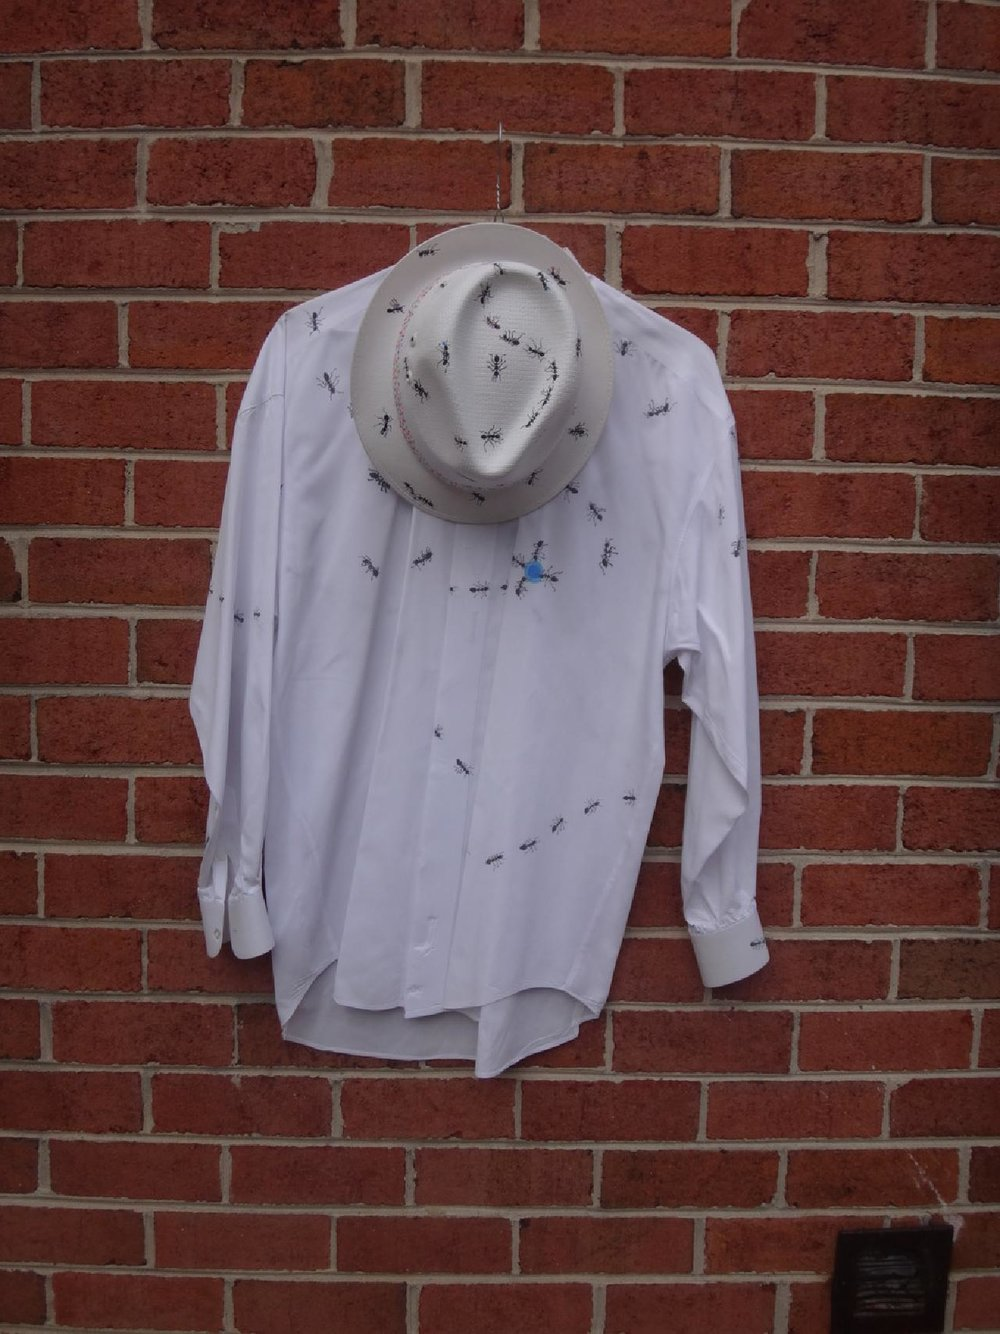 "Title: Ants, Hat and Shirt  Artist: Songmi Heart  Medium: Straw Hat & Cotton Shirt (Paint)  Dimensions: , Hat, 11"" Deep, 10"" Wide 5"" High  Shirt, Size Medium  Price: Contact for Inquiry"